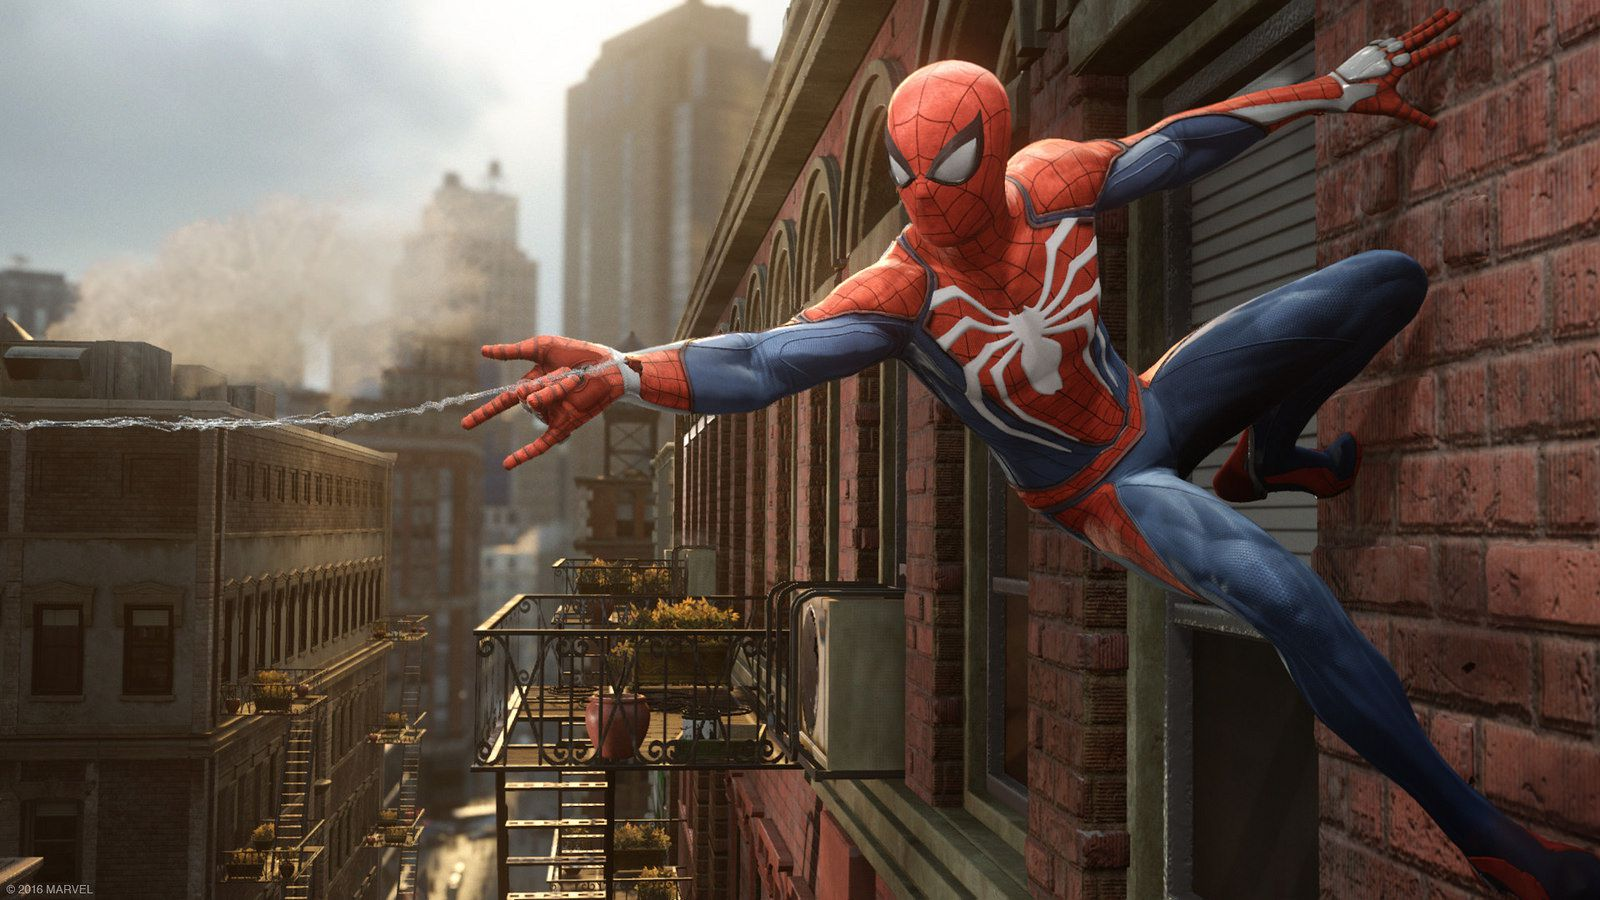 PS4 Spider-Man analysis from someone who worked on 5 Spider-Man games